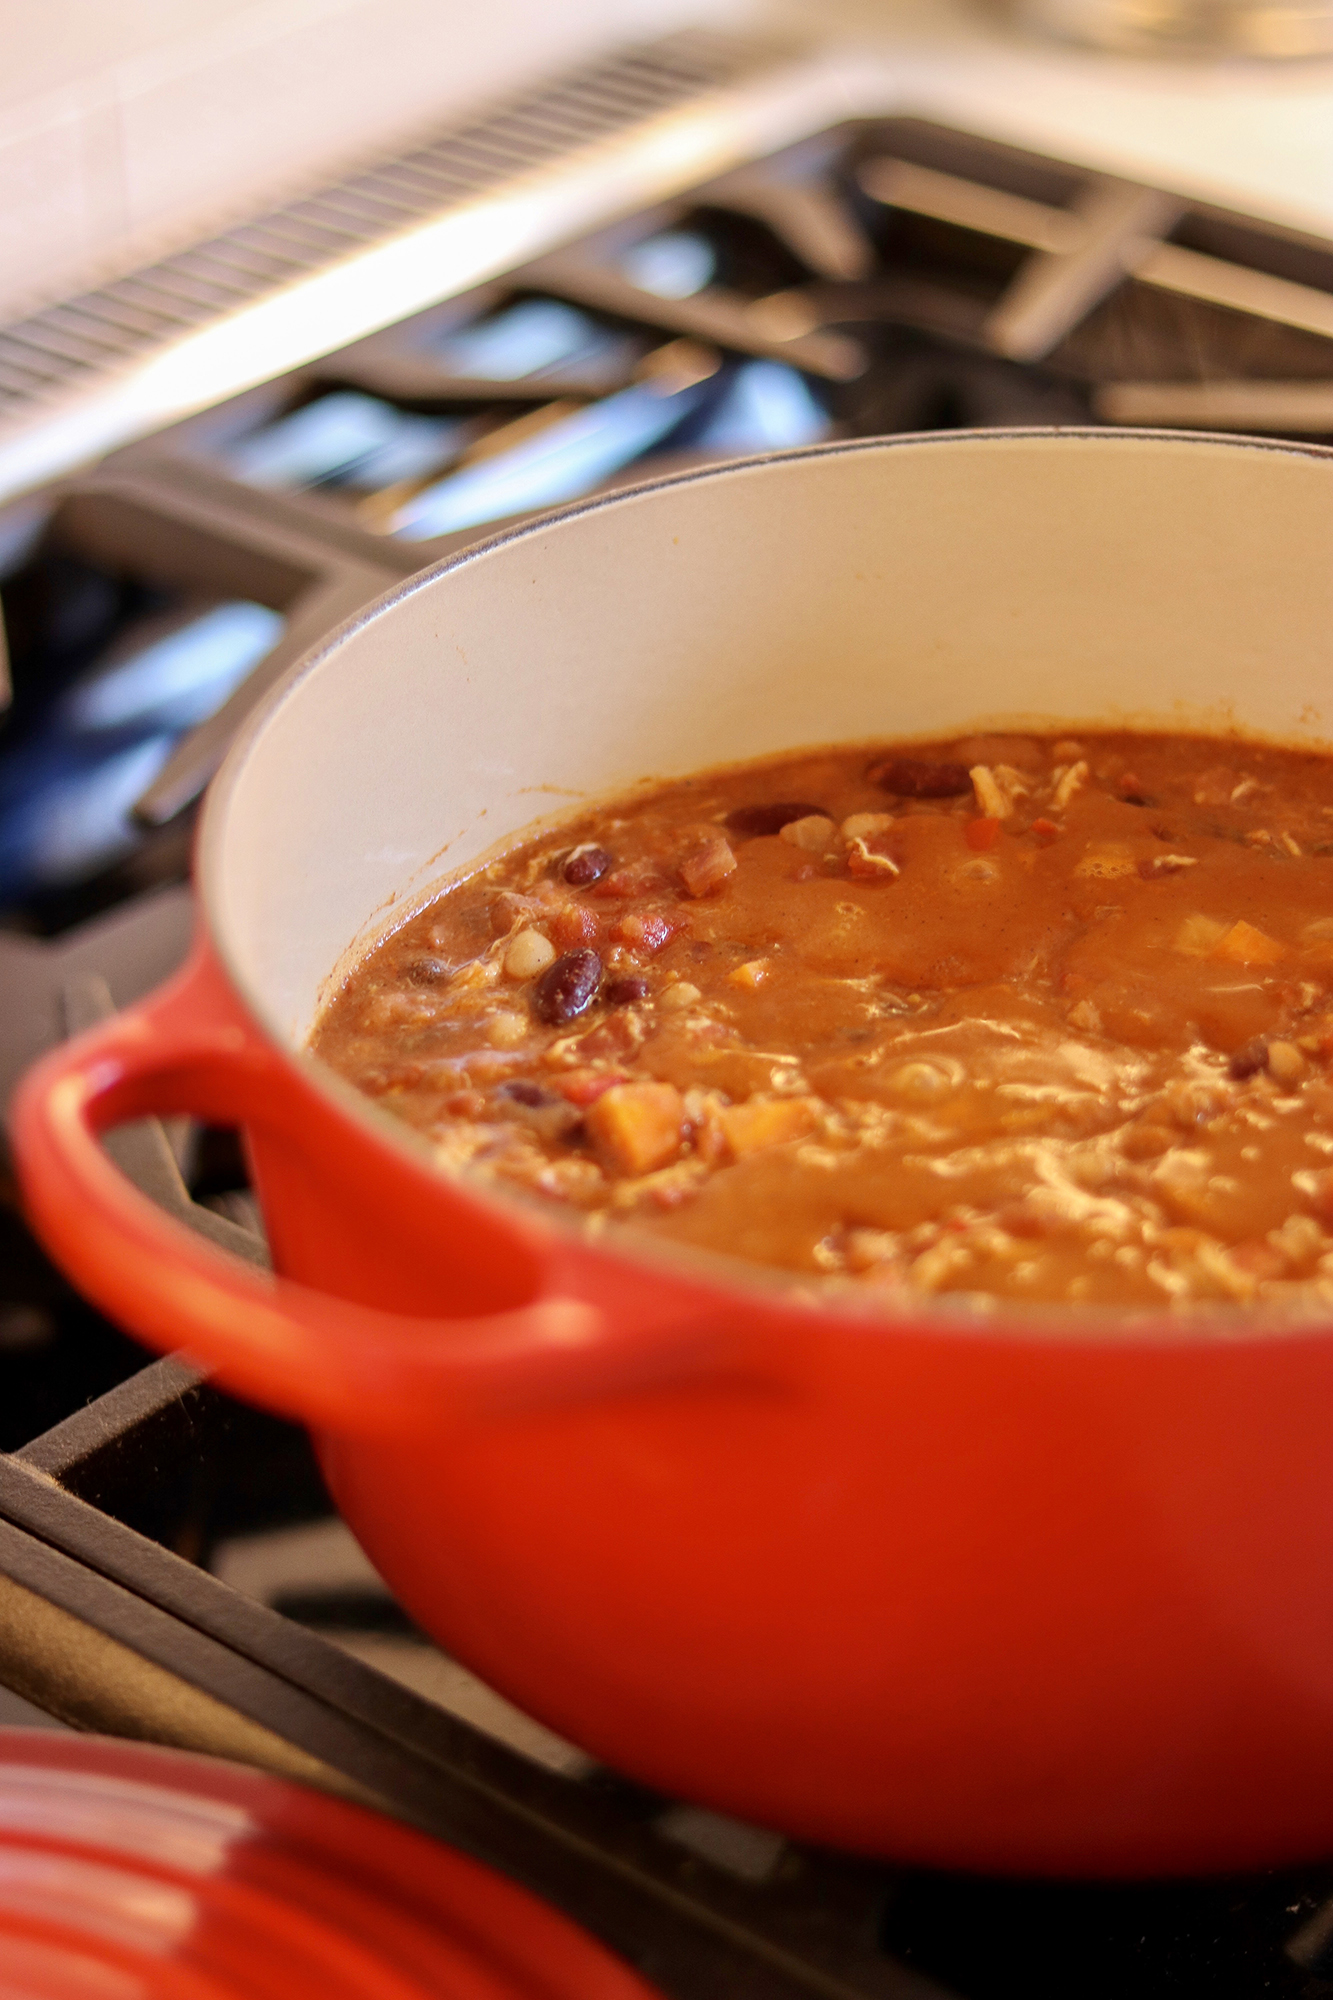 Delicious 3-Bean Chicken Chili Recipe for those cozy Fall/Winter nights in. The best weeknight dinner recipe for families!